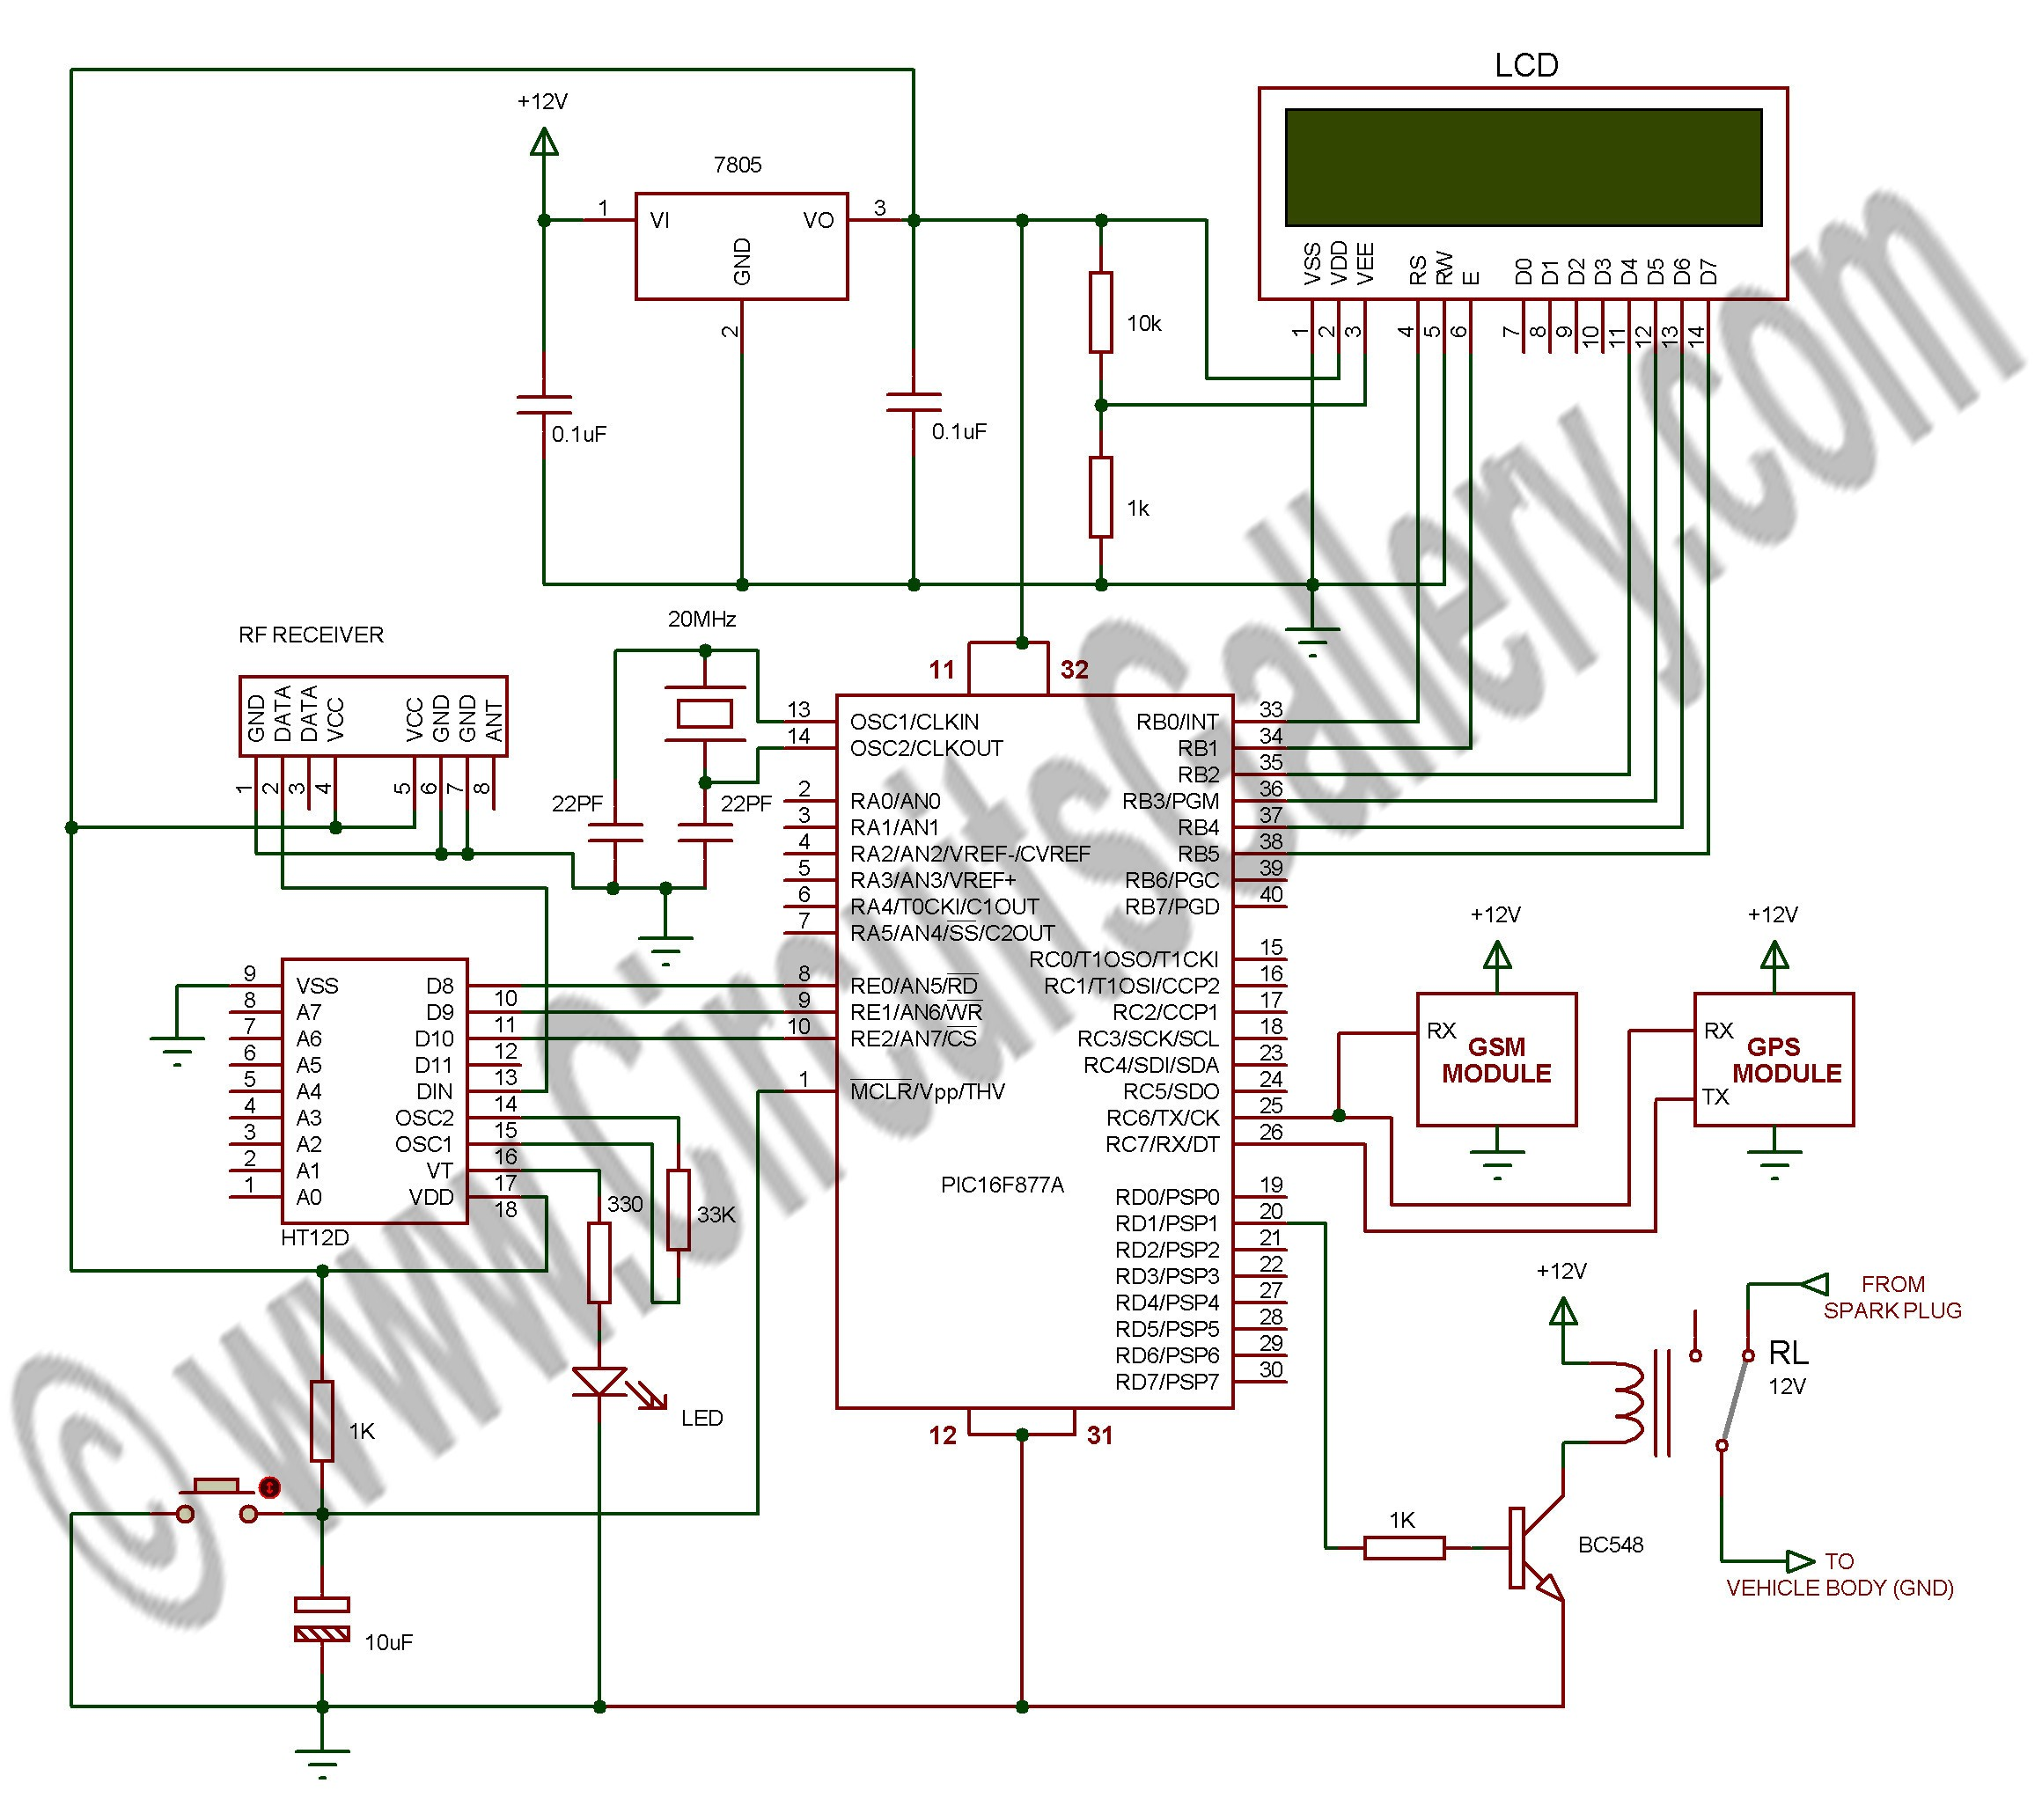 W Mh Wiring Diagram on transformer diagrams, battery diagrams, electronic circuit diagrams, engine diagrams, motor diagrams, internet of things diagrams, electrical diagrams, led circuit diagrams, lighting diagrams, friendship bracelet diagrams, switch diagrams, pinout diagrams, gmc fuse box diagrams, honda motorcycle repair diagrams, sincgars radio configurations diagrams, hvac diagrams, troubleshooting diagrams, smart car diagrams, snatch block diagrams, series and parallel circuits diagrams,